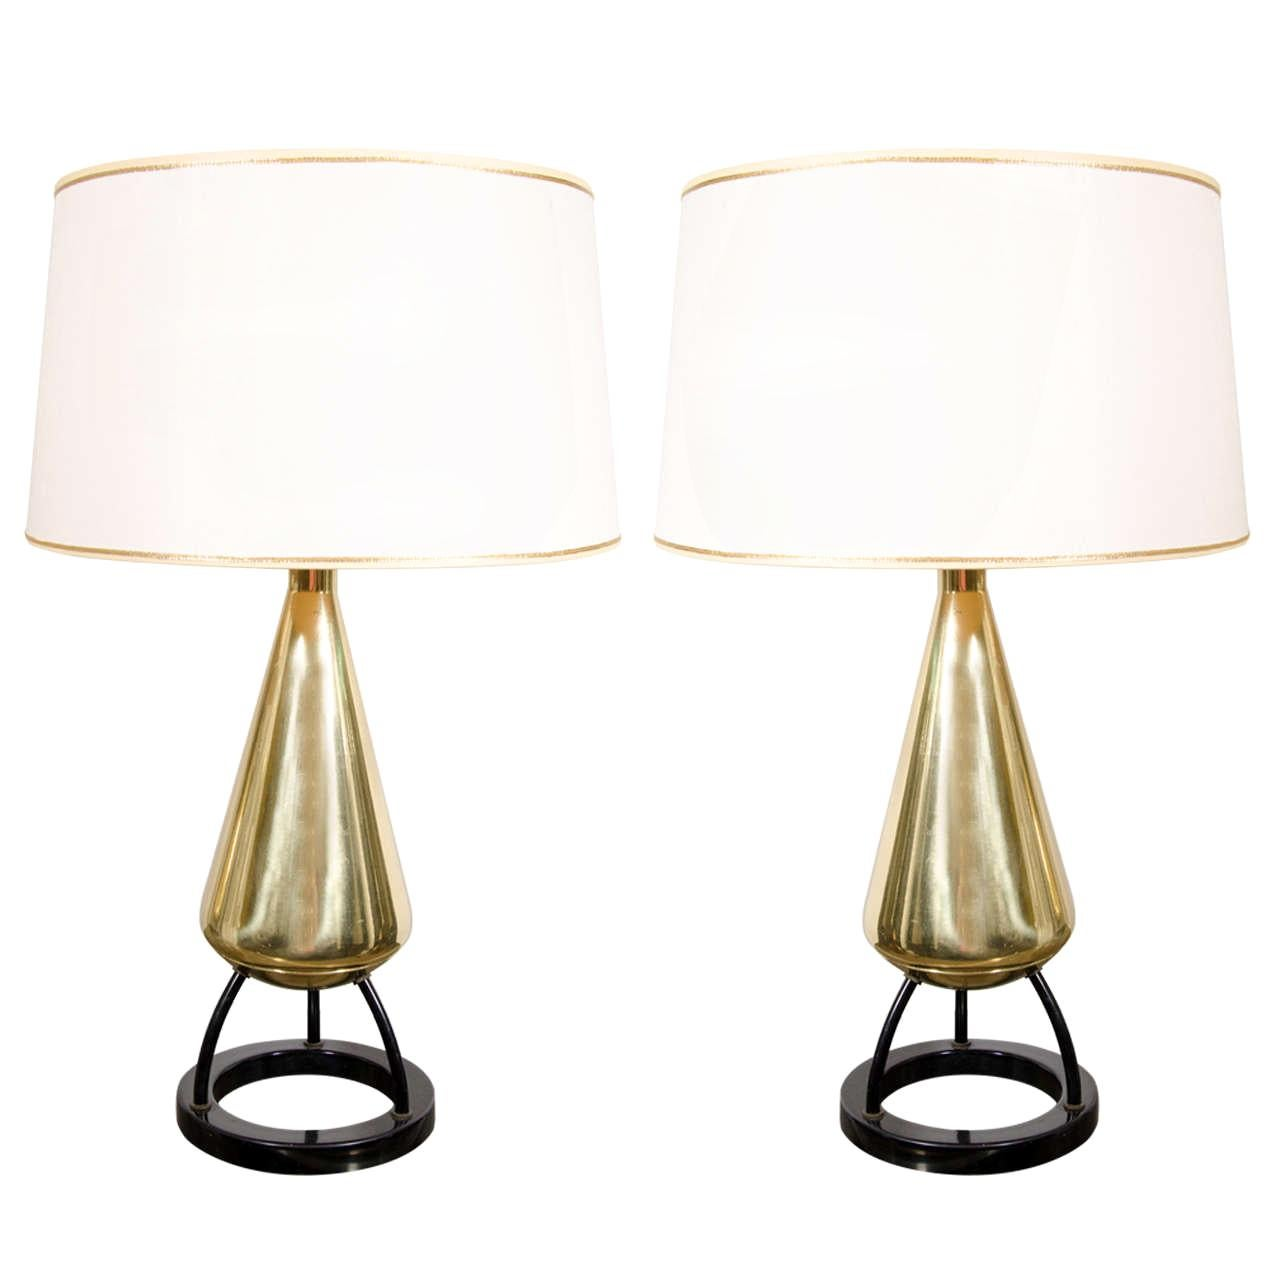 Pair of 1950s Mid-Century Modern Atomic Age Brass and Enamel Table Lamps